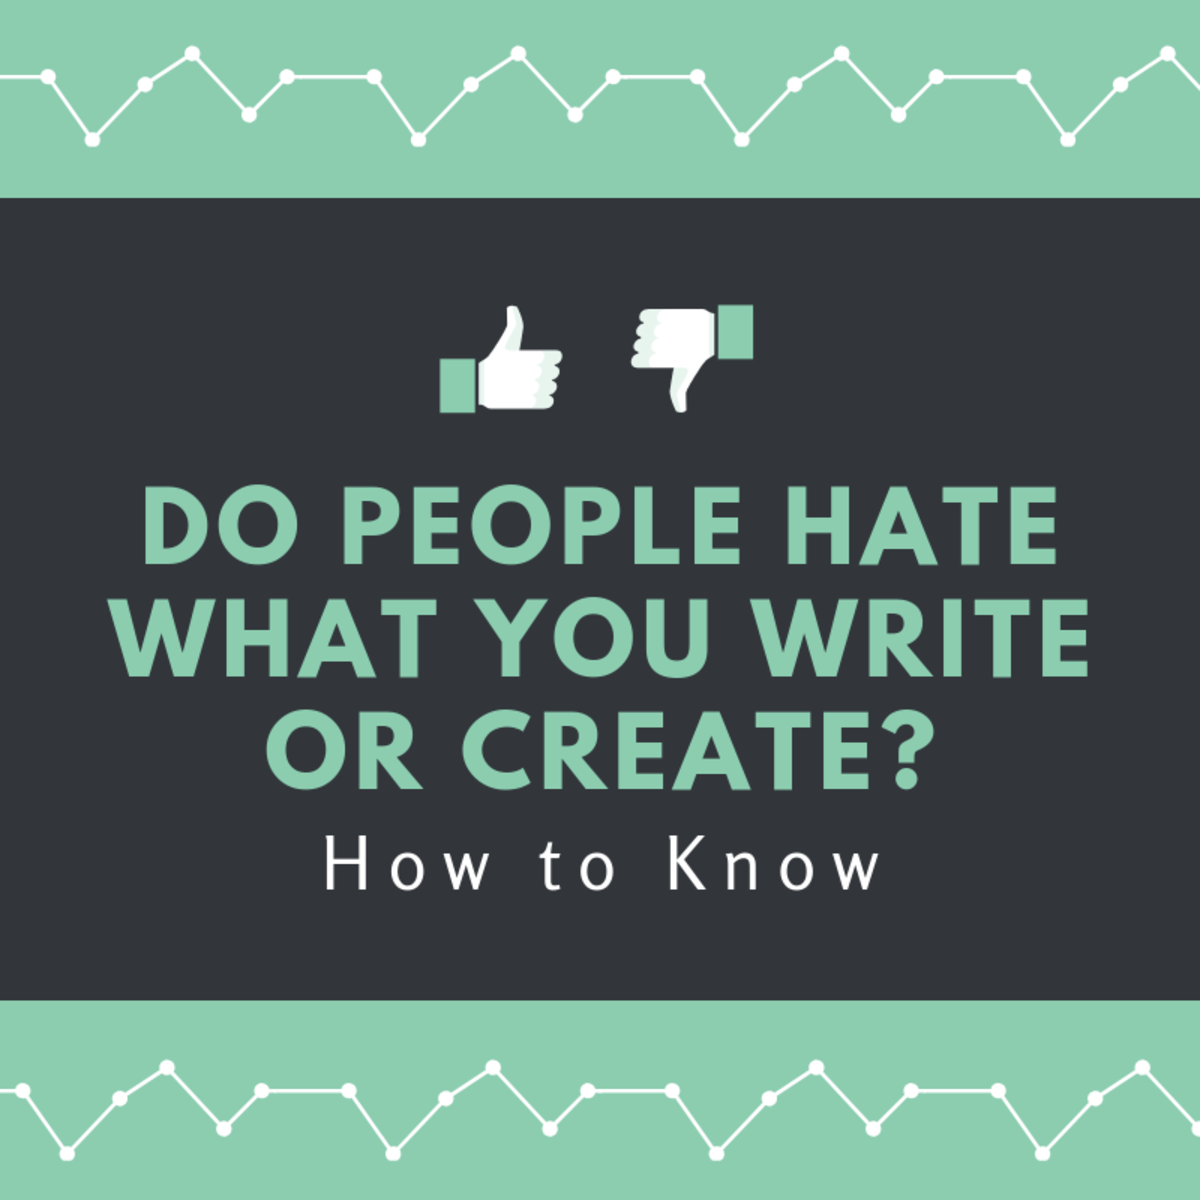 Do People Hate What You Write or Create? How to Know